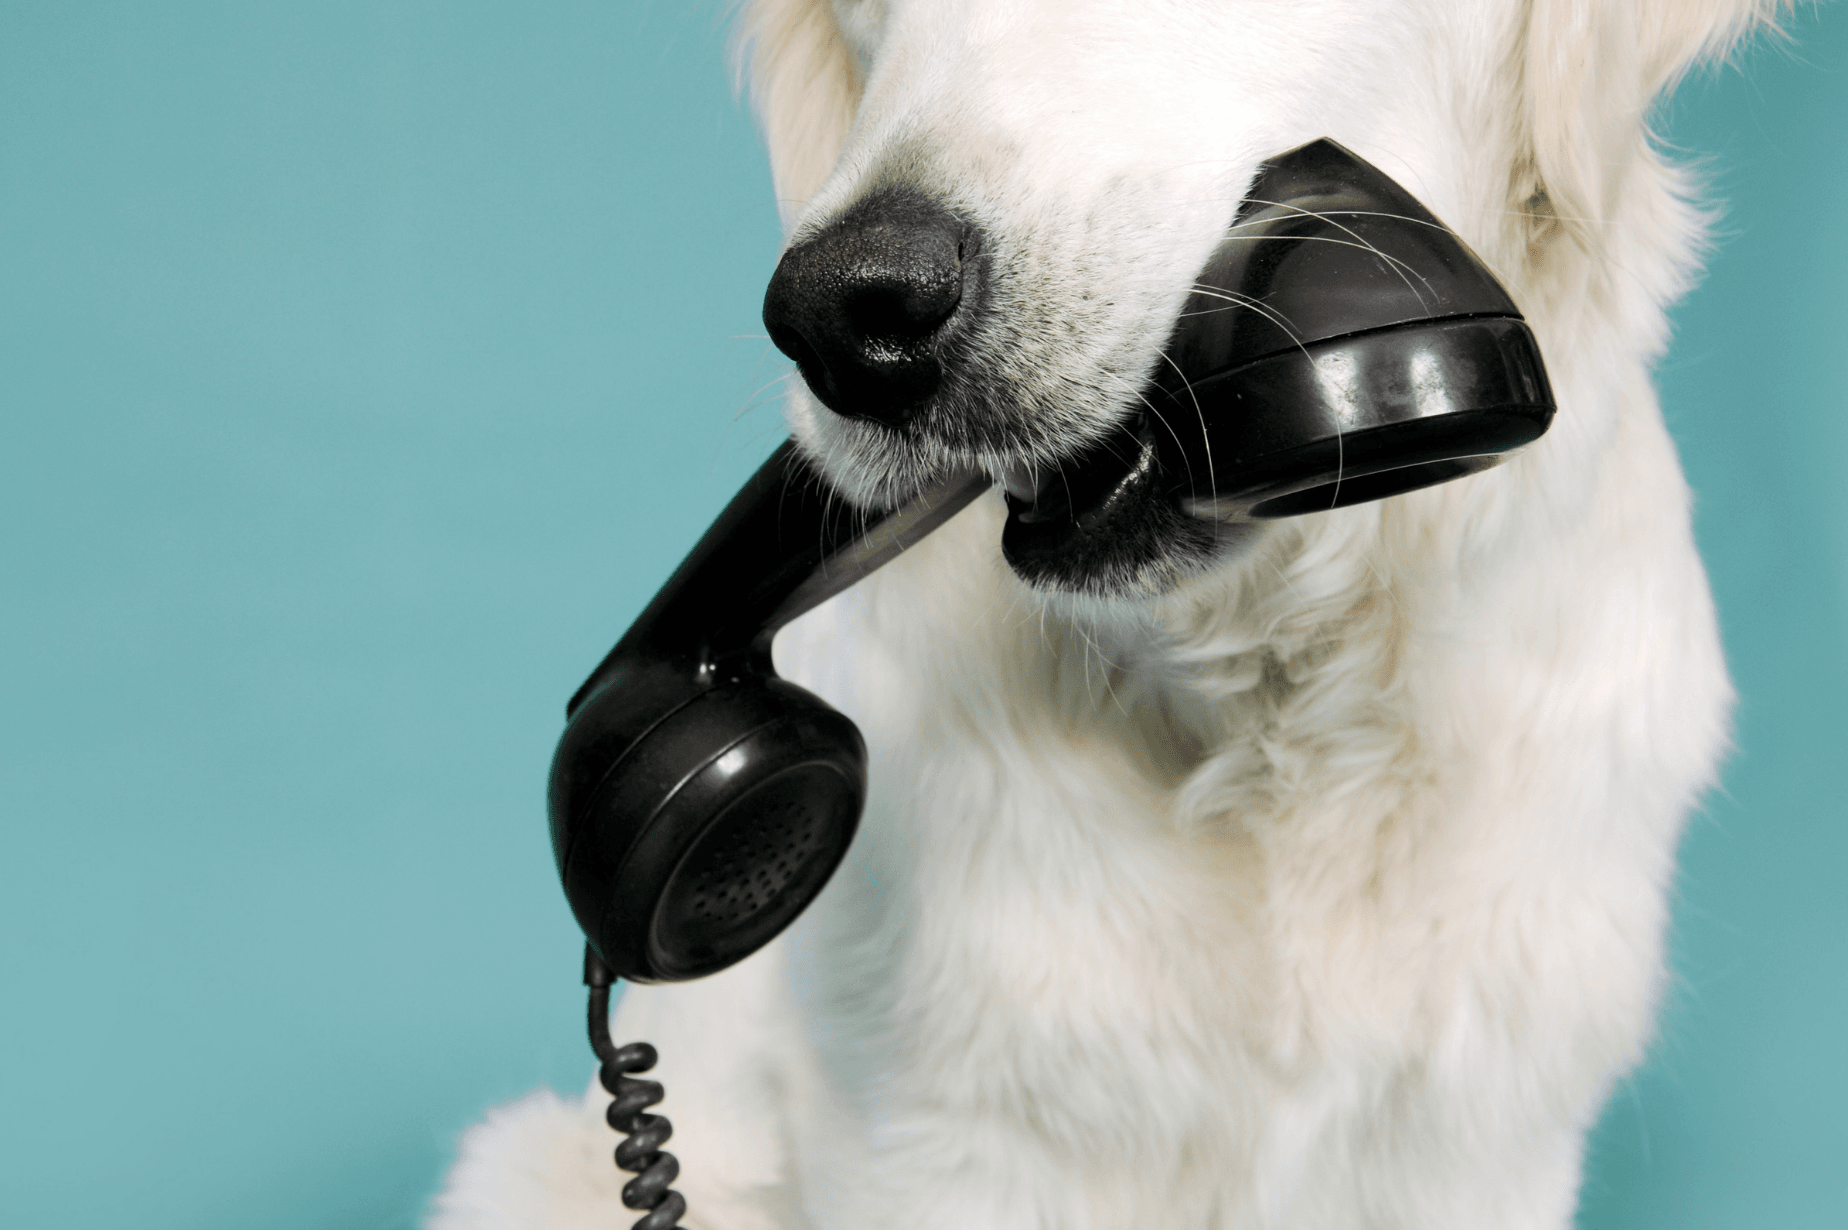 Dog with white fur holding a black phone